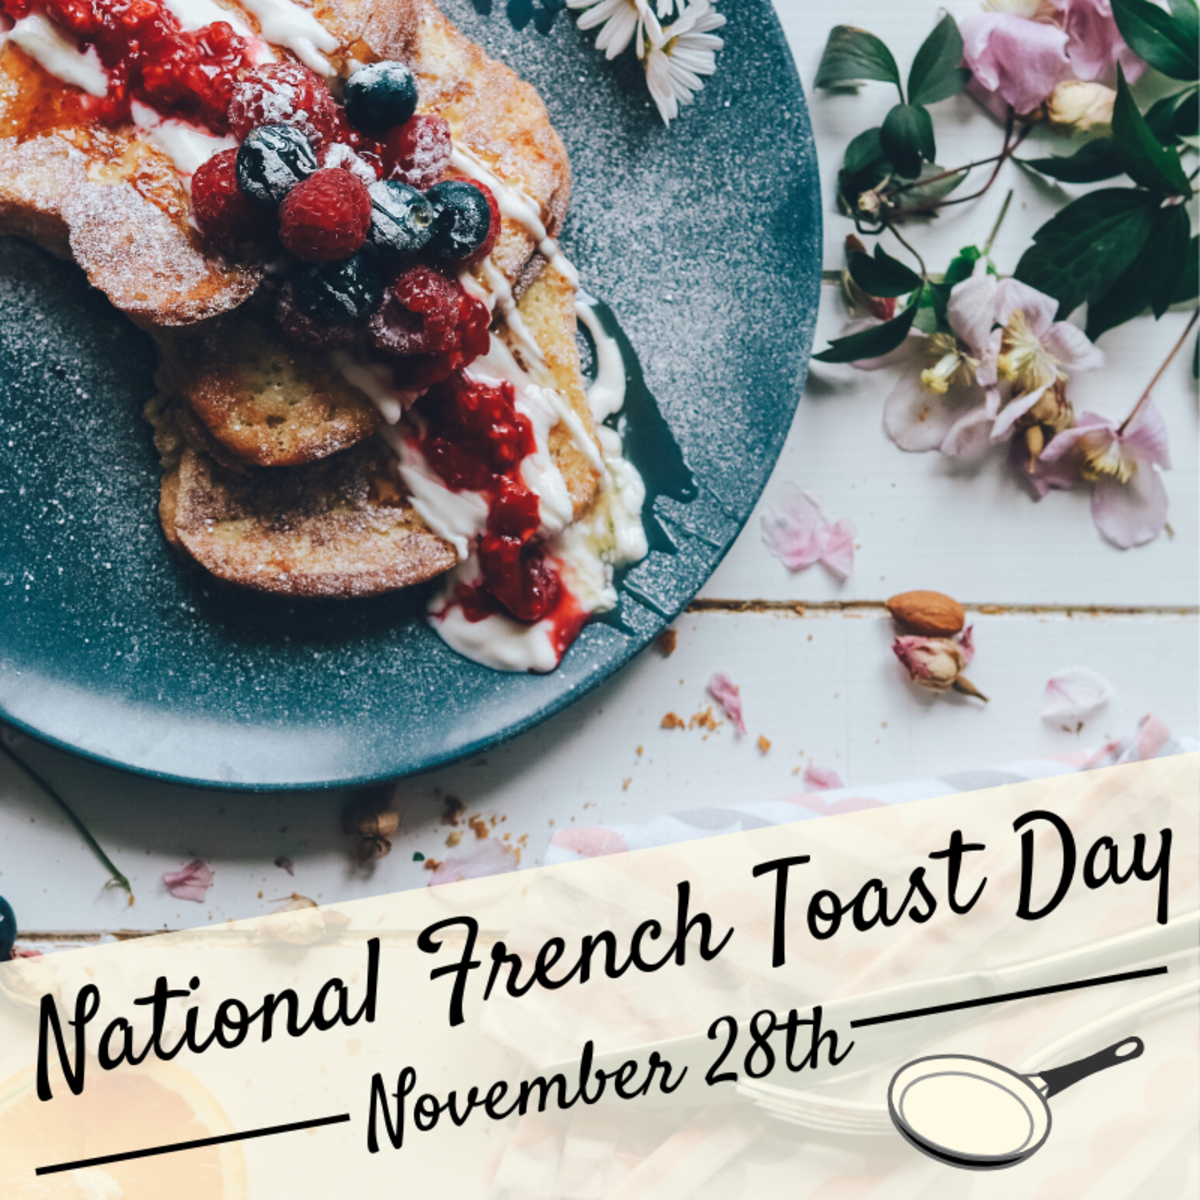 November 28th Is National French Toast Day